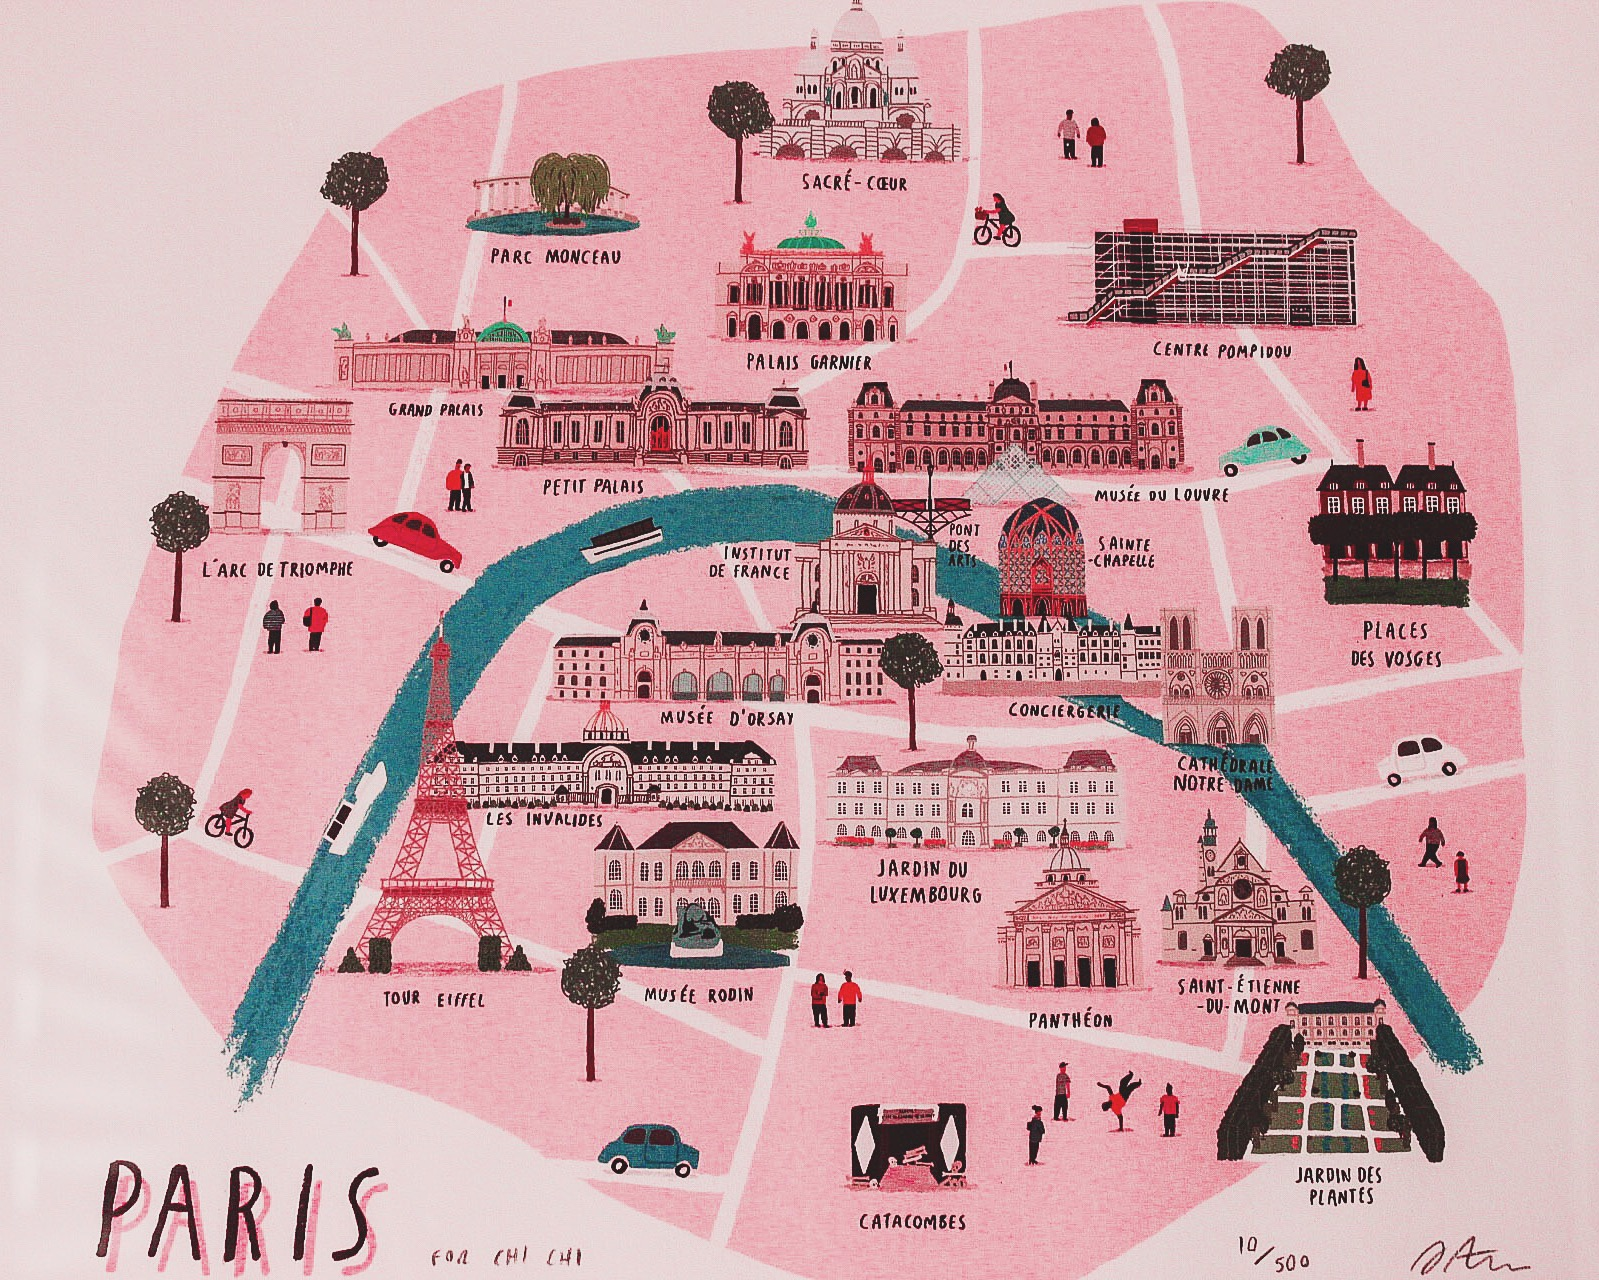 easons to travel, motivation to travel travel the world life change travel learn with travel 2016 fall autumn top indian blog indian travel blogger indian fashion blogger london blog brit blog  uk blog travel story travel 2016 fav cities paris london alex foster illustration review